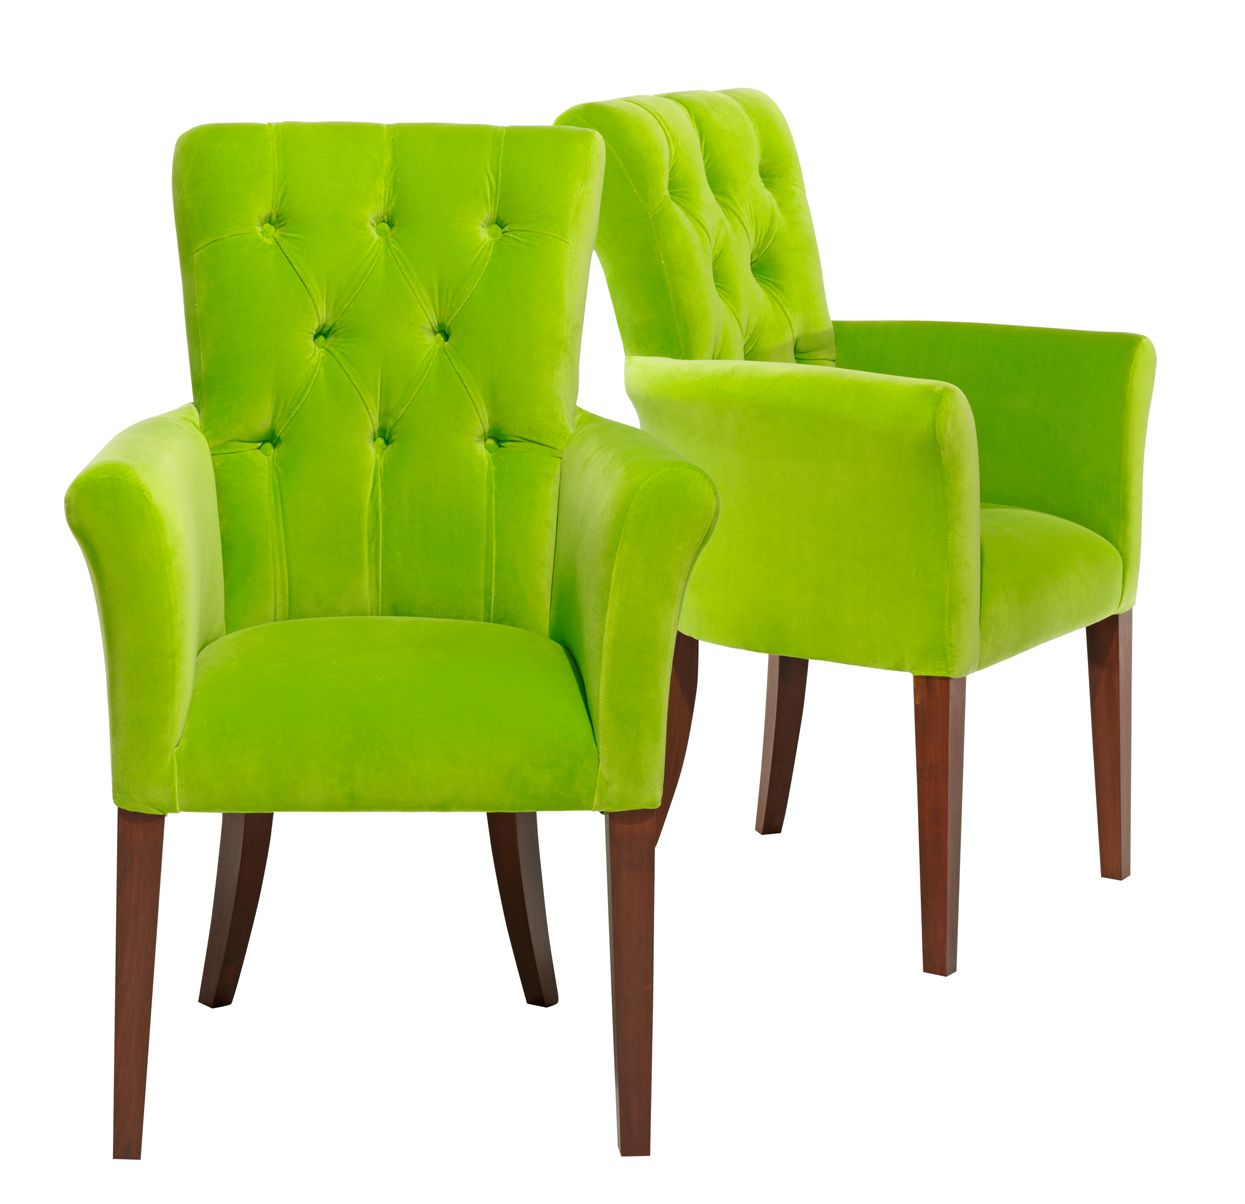 These Bright Lime Green Chairs From Sofa Design Add Some Colour To The Dining Room